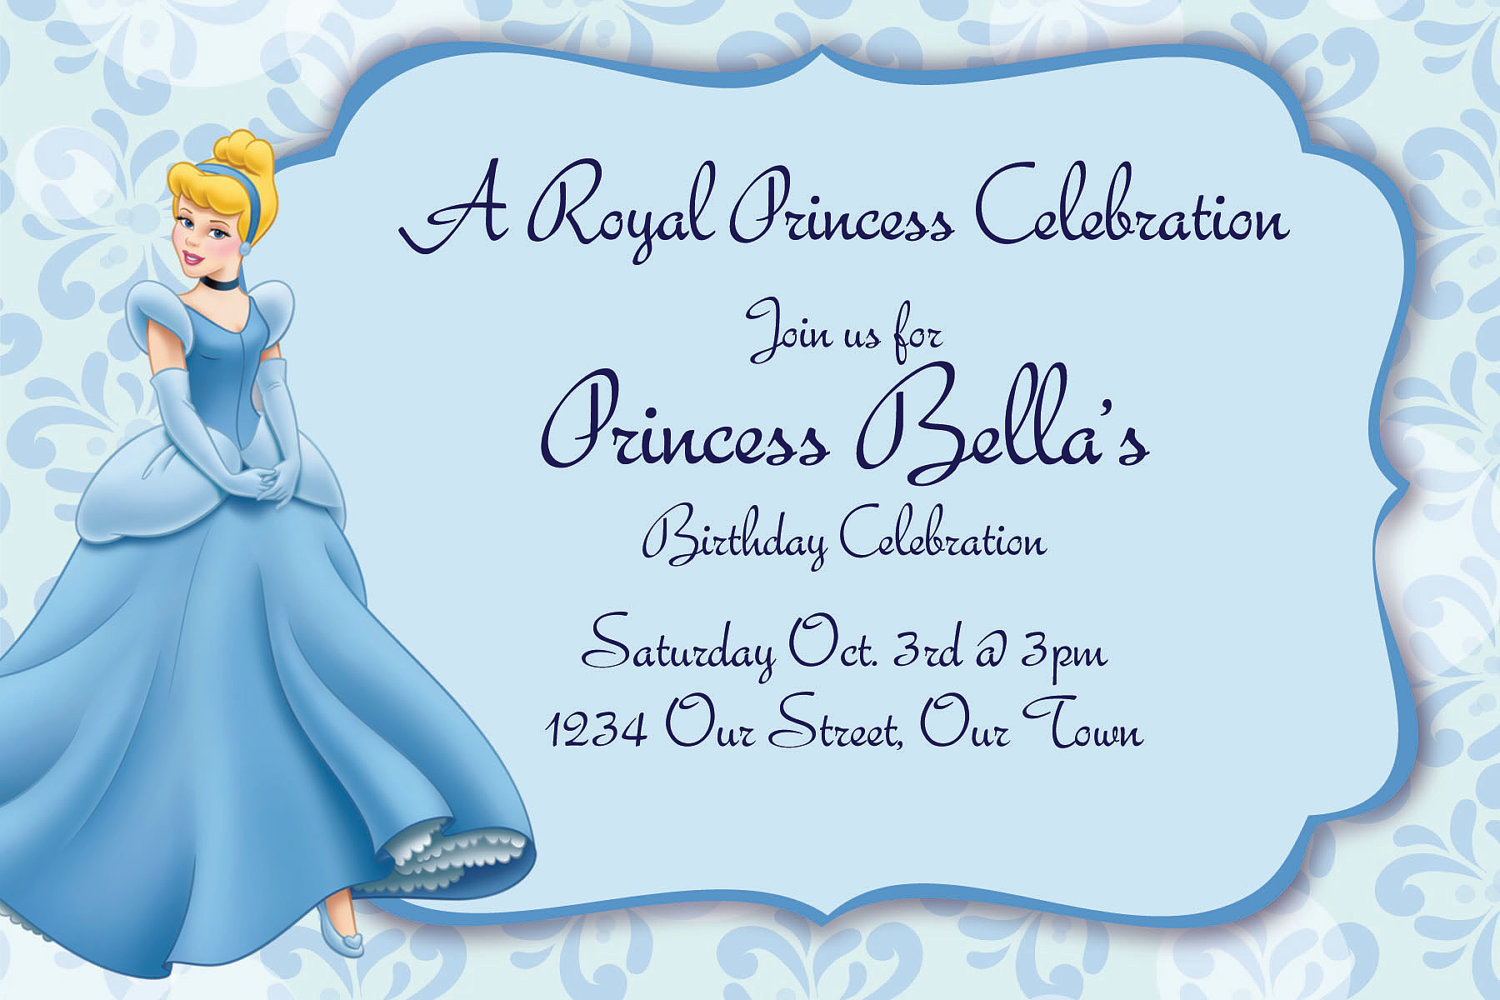 cinderella birthday card ; Cinderella-birthday-invitations-and-get-inspiration-to-create-the-birthday-invitation-design-of-your-dreams-1